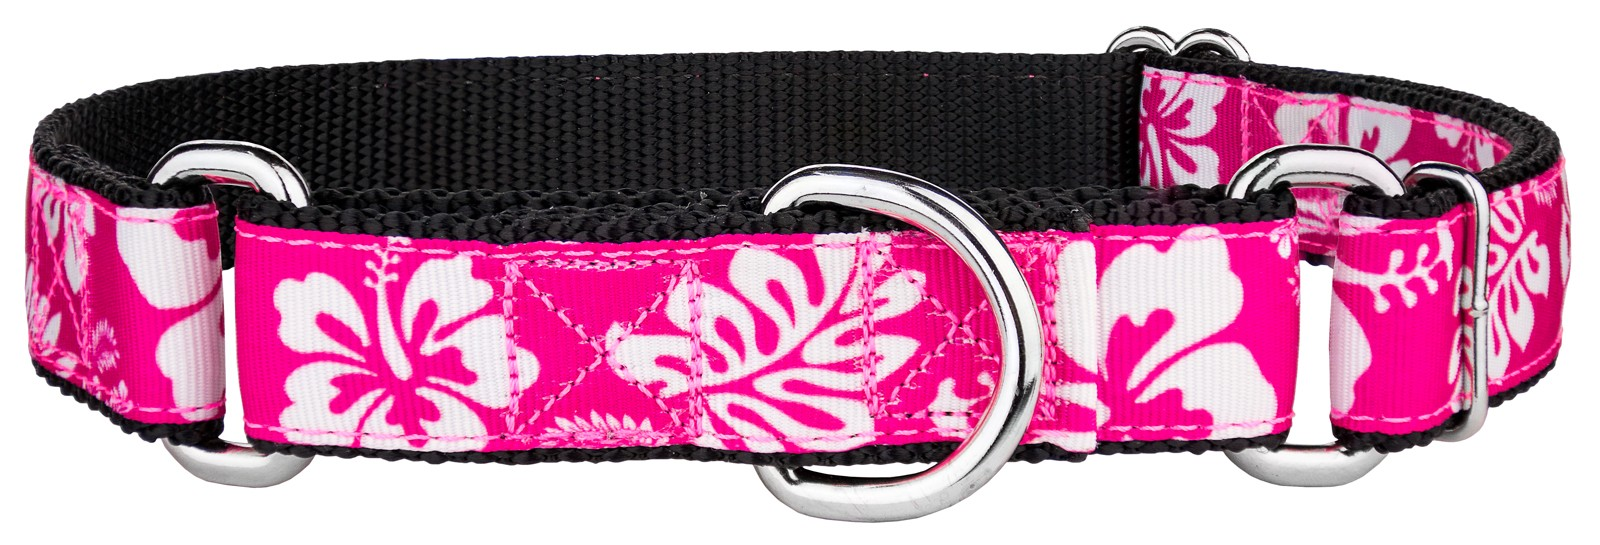 Hawaiian Design Dog Collars